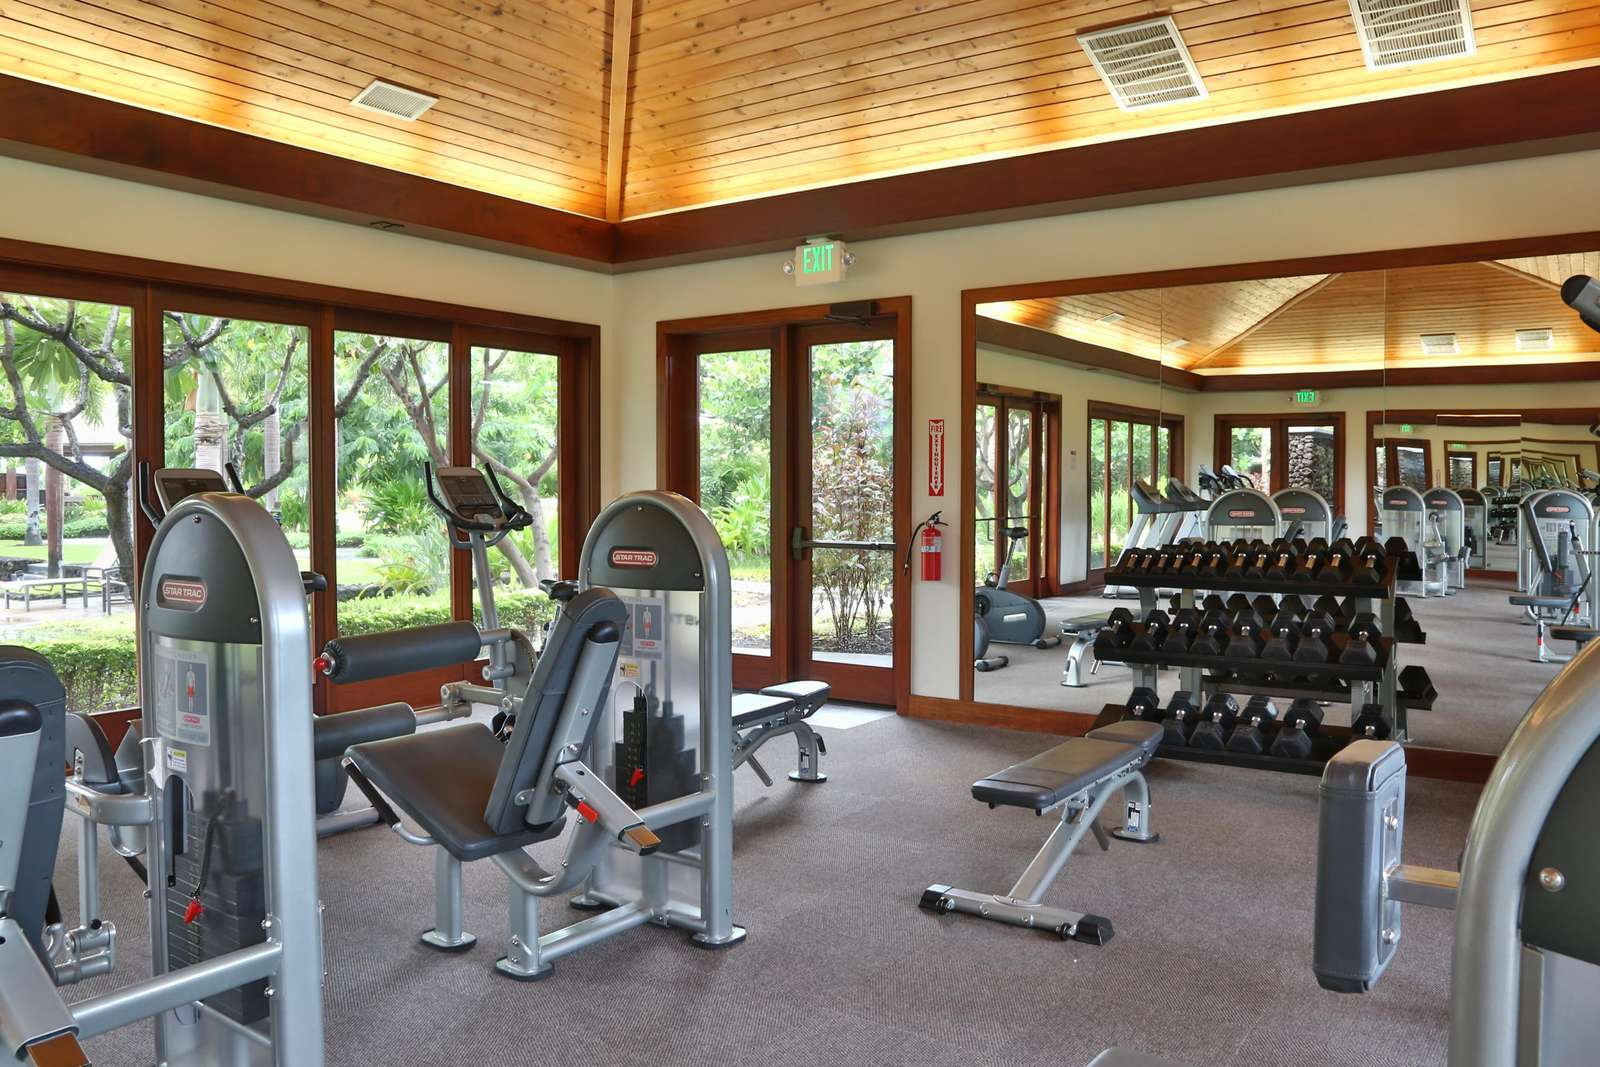 Community gym includes machines and free weights